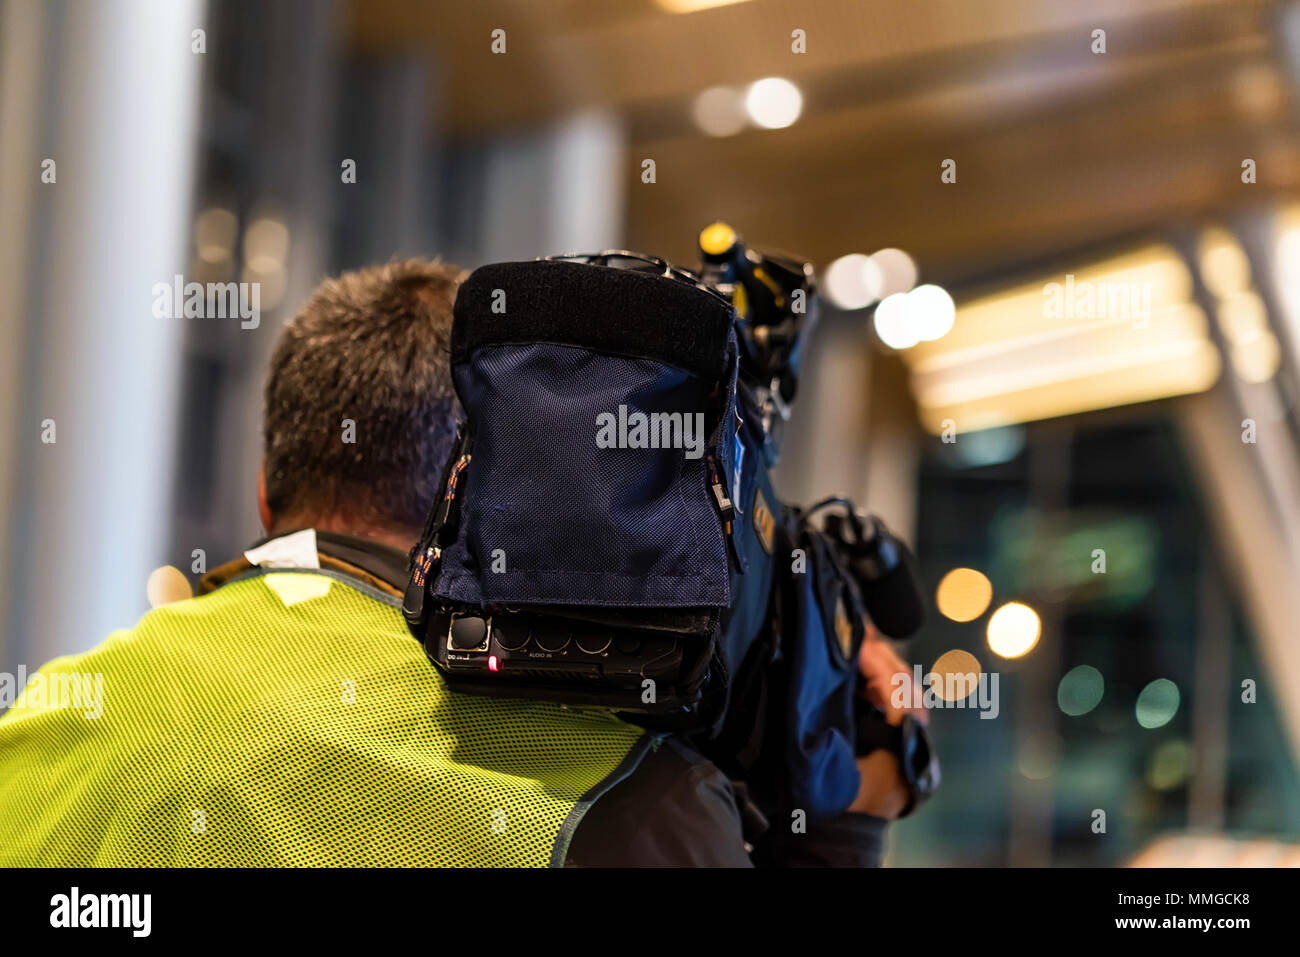 Back view cameraman filming news indoors - Stock Image